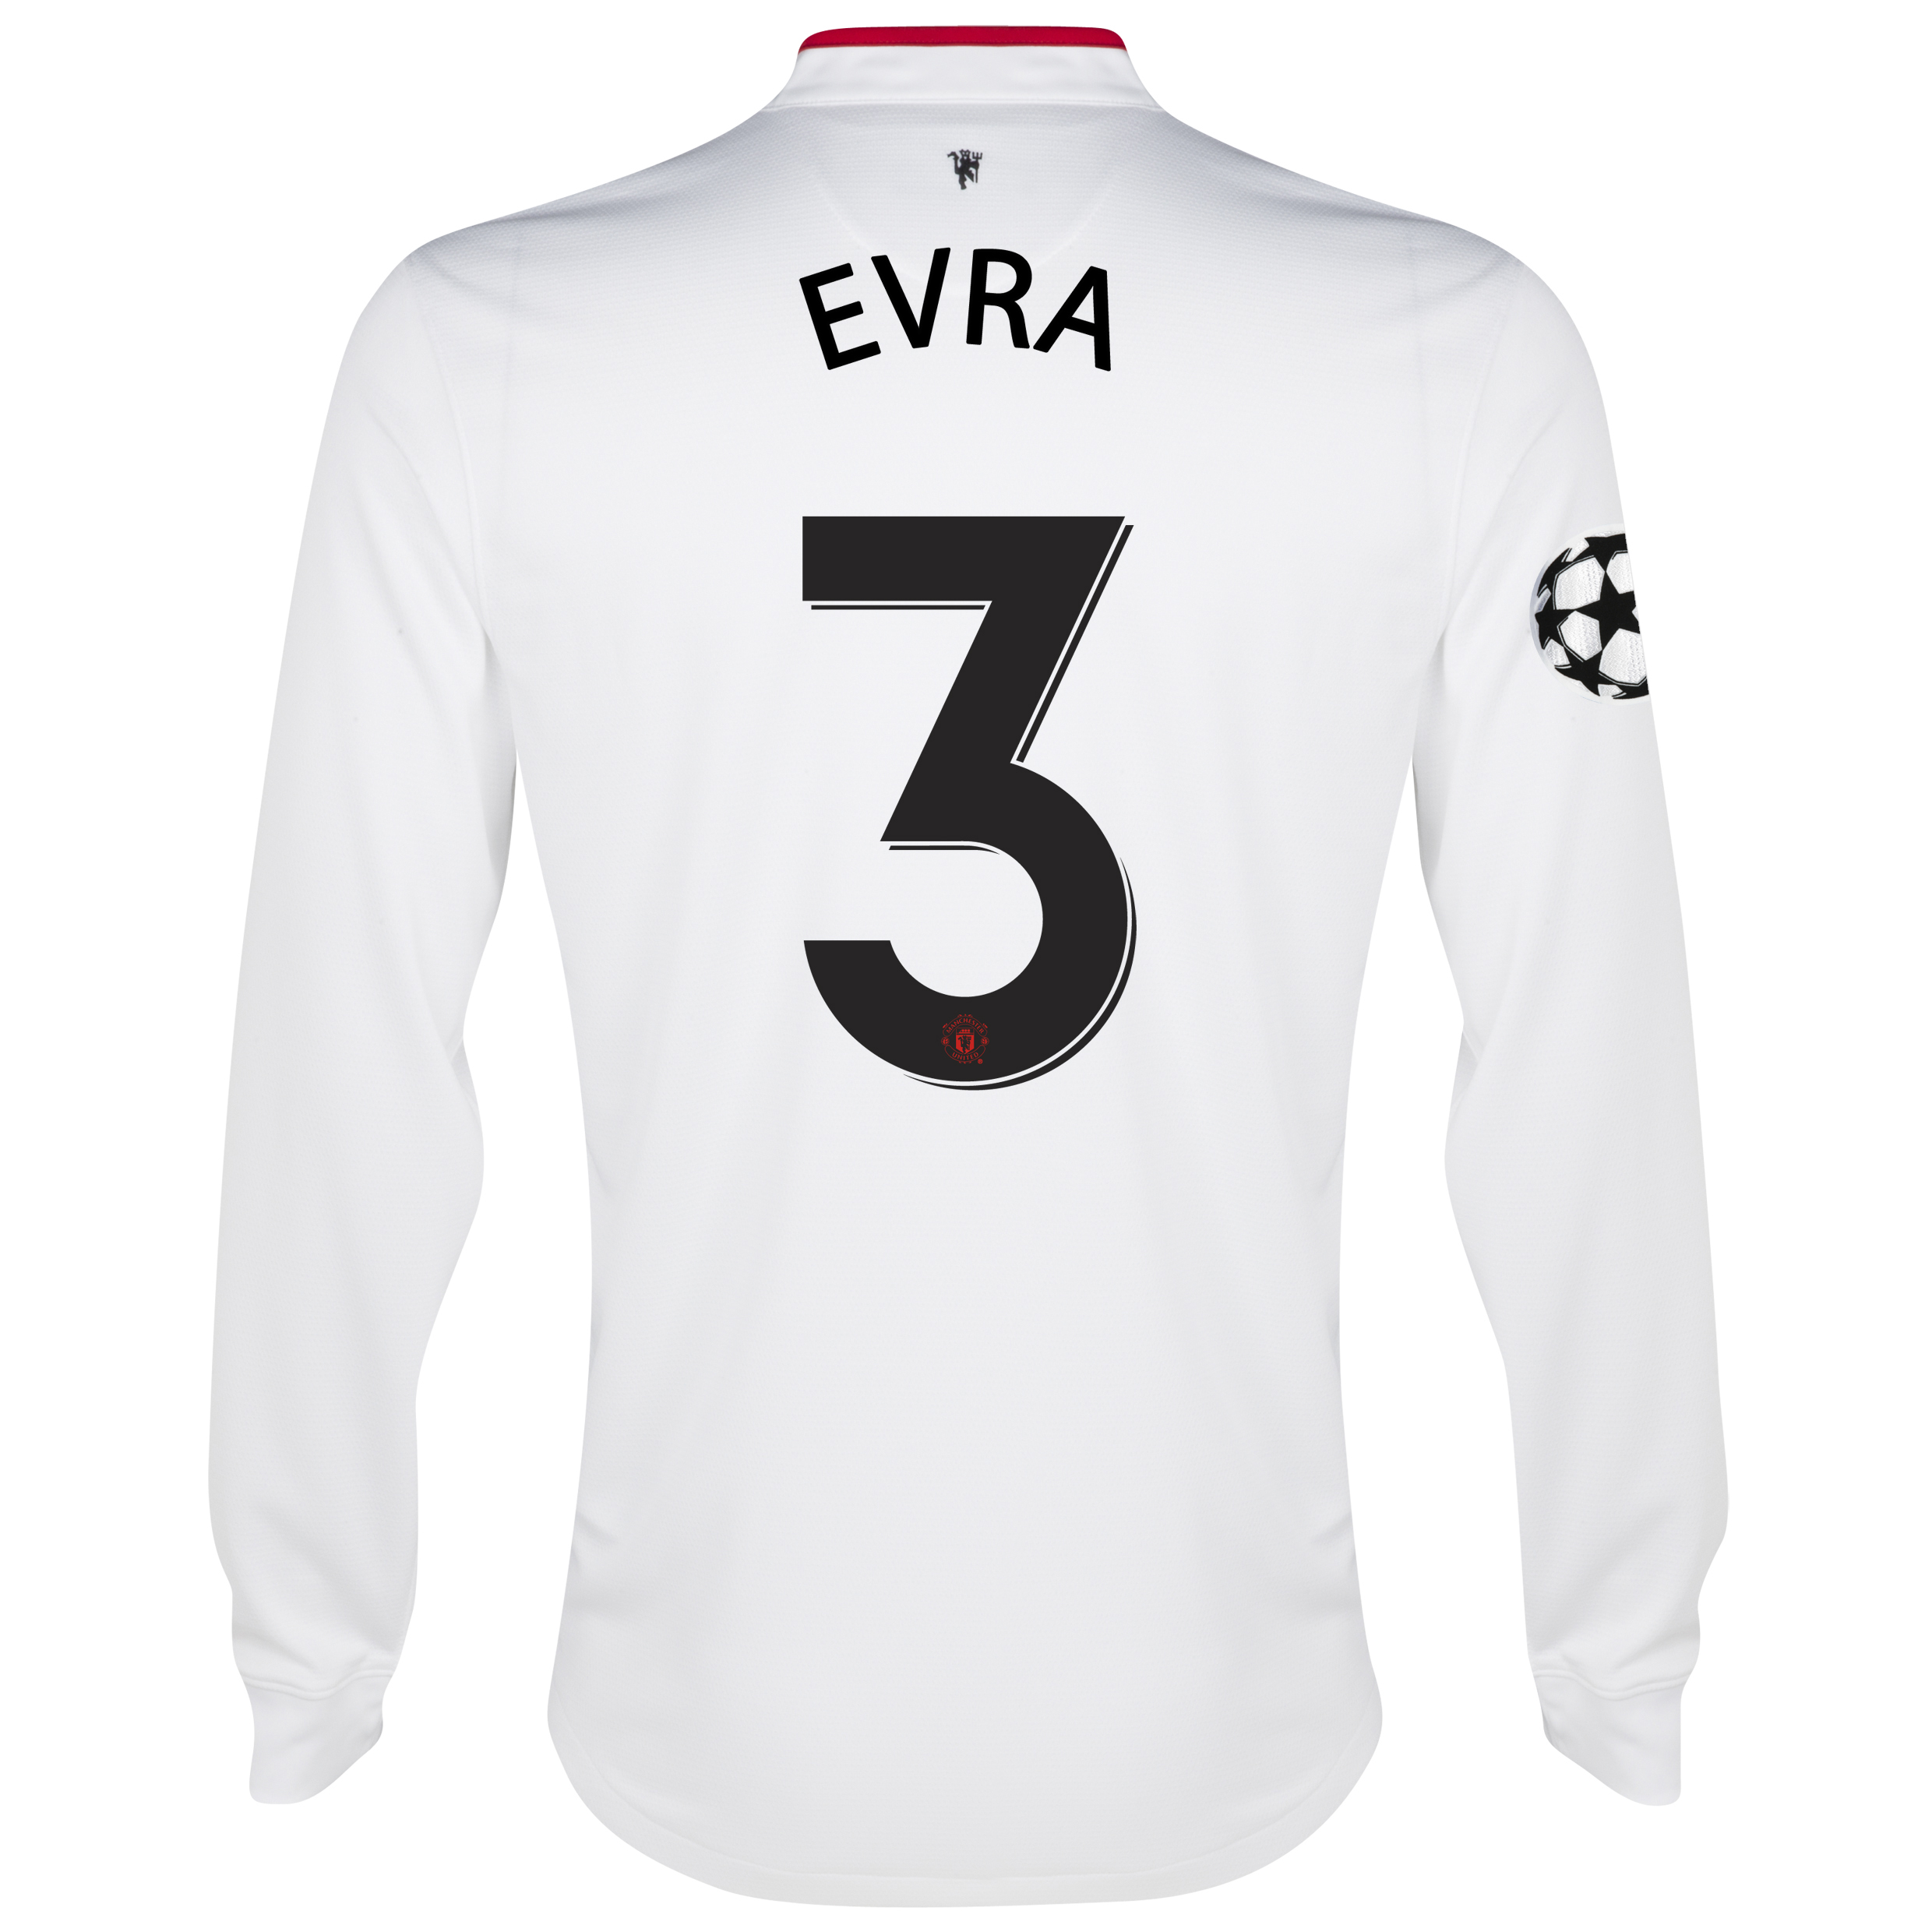 Manchester United UEFA Champions League Away Shirt 2012/13 - Long Sleeved - Youths with Evra 3 printing